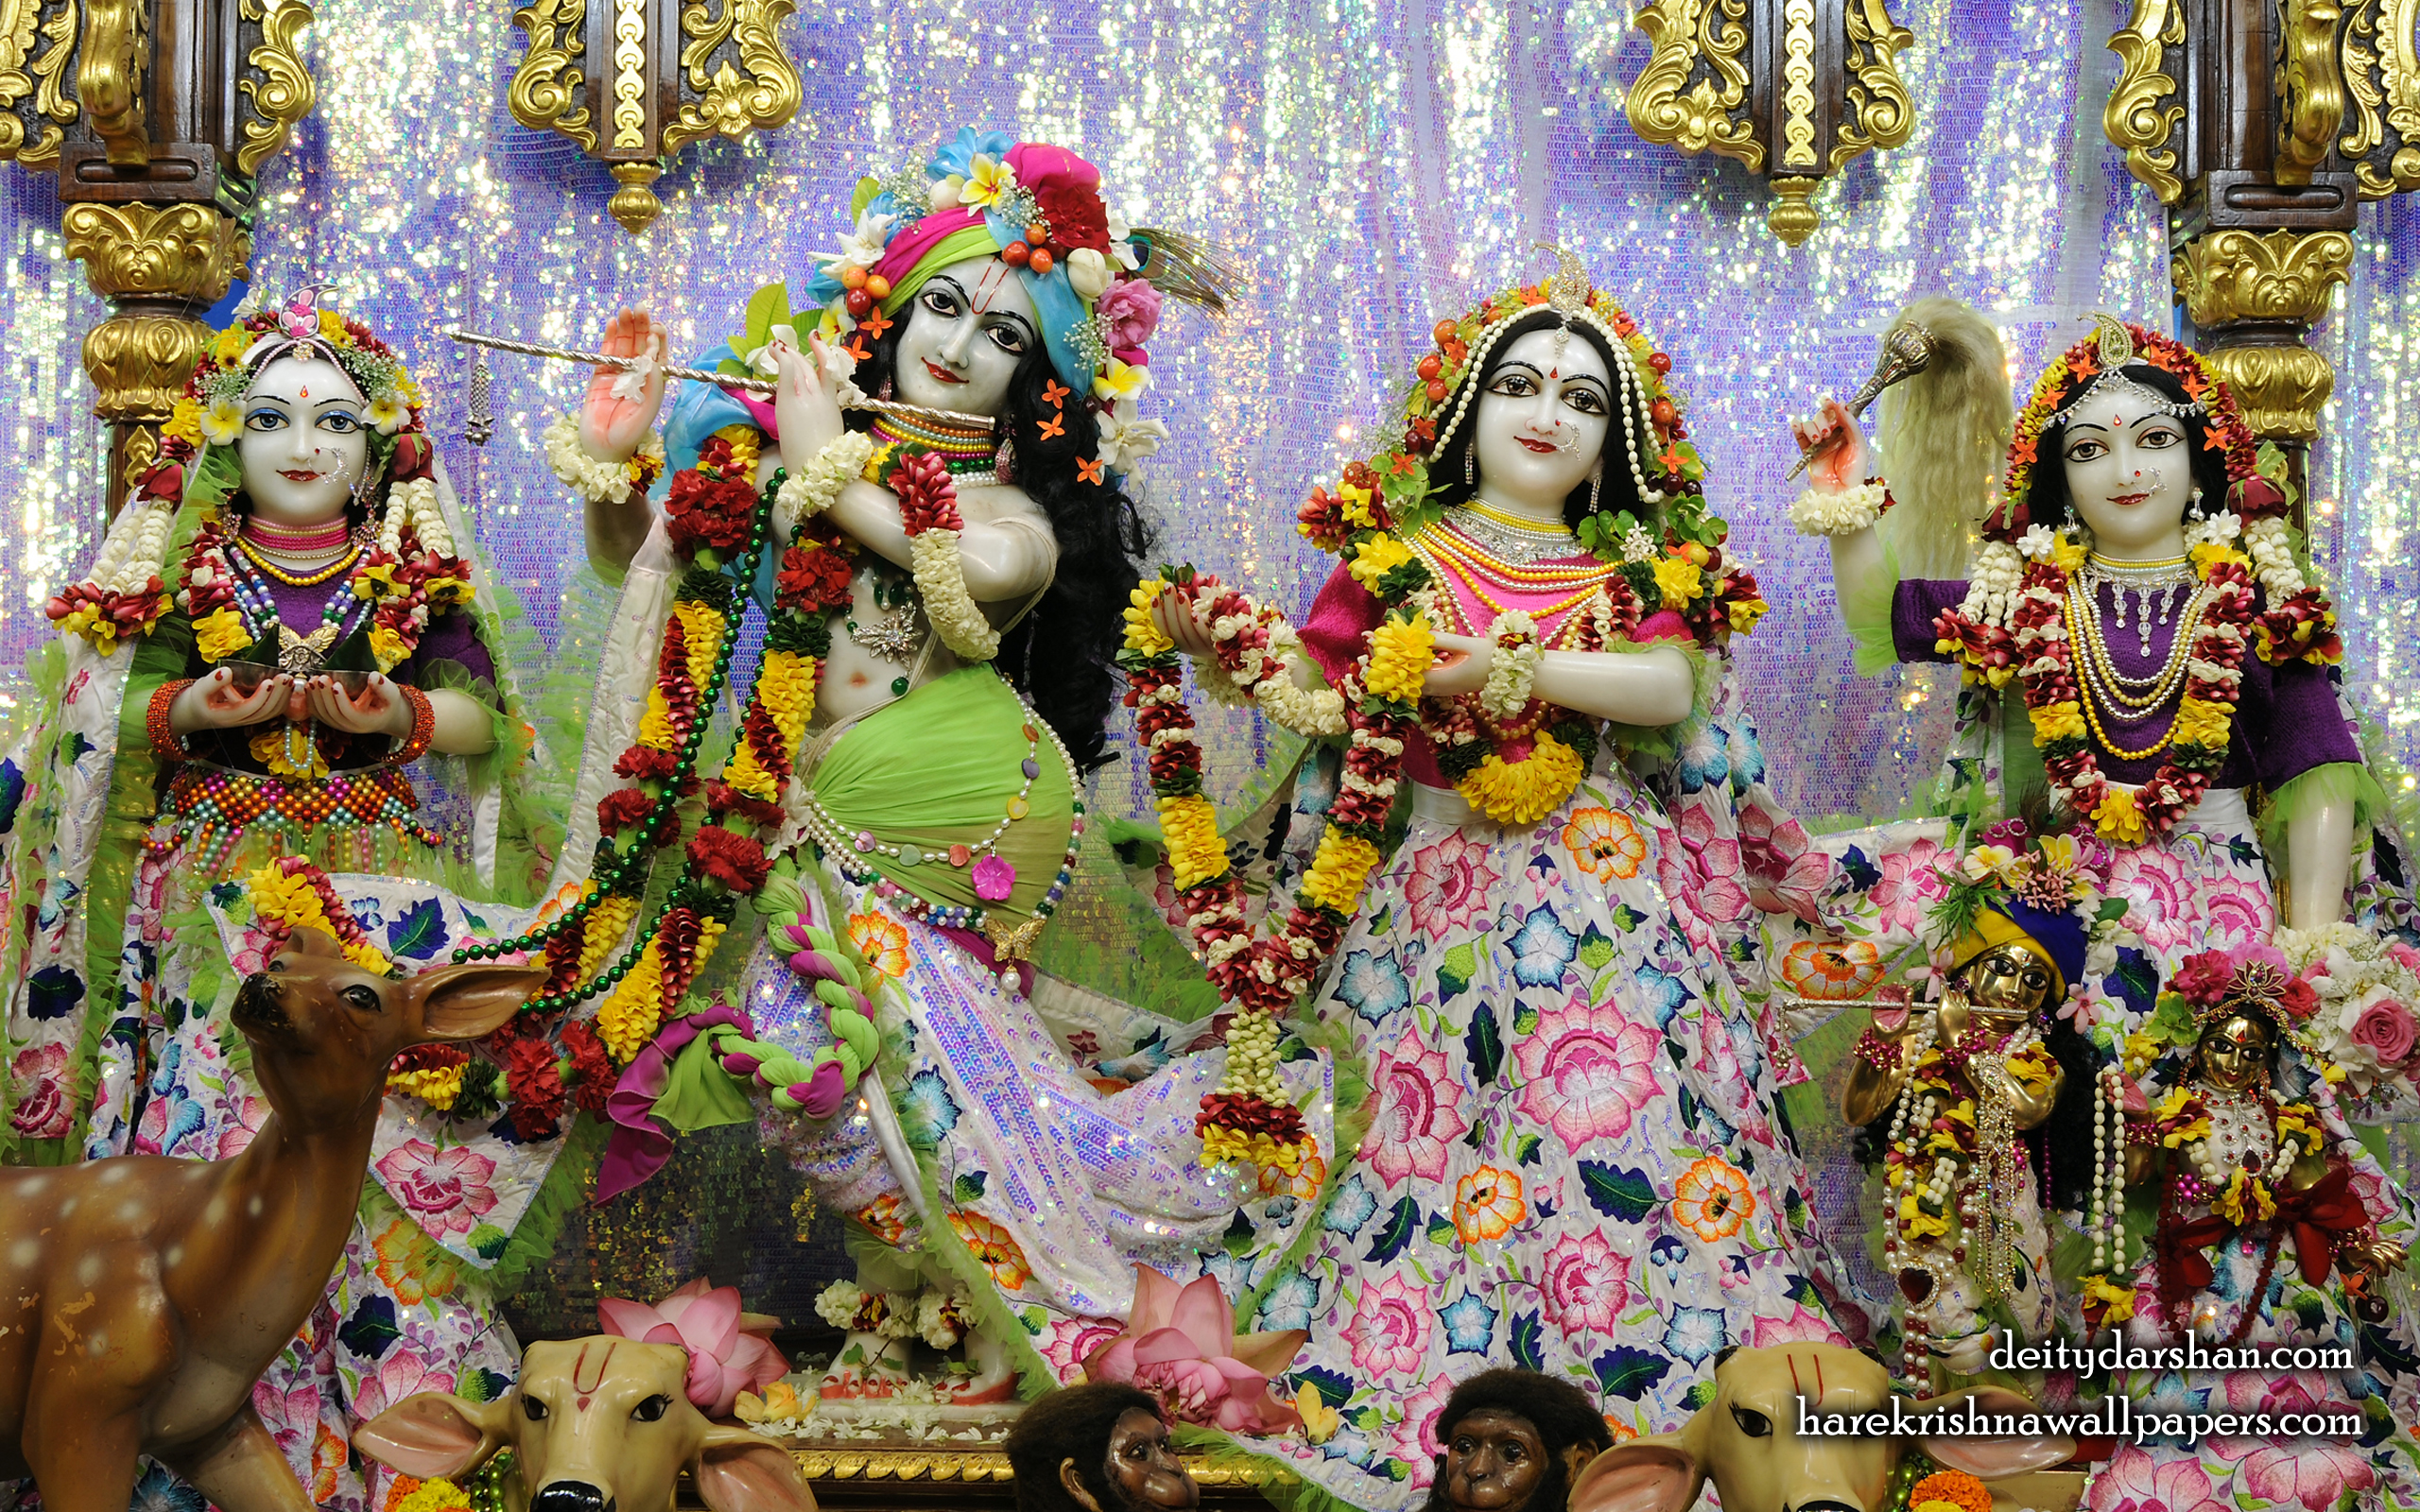 Sri Sri Radha Gopinath Lalita Vishakha Wallpaper (072) Size 2560x1600 Download